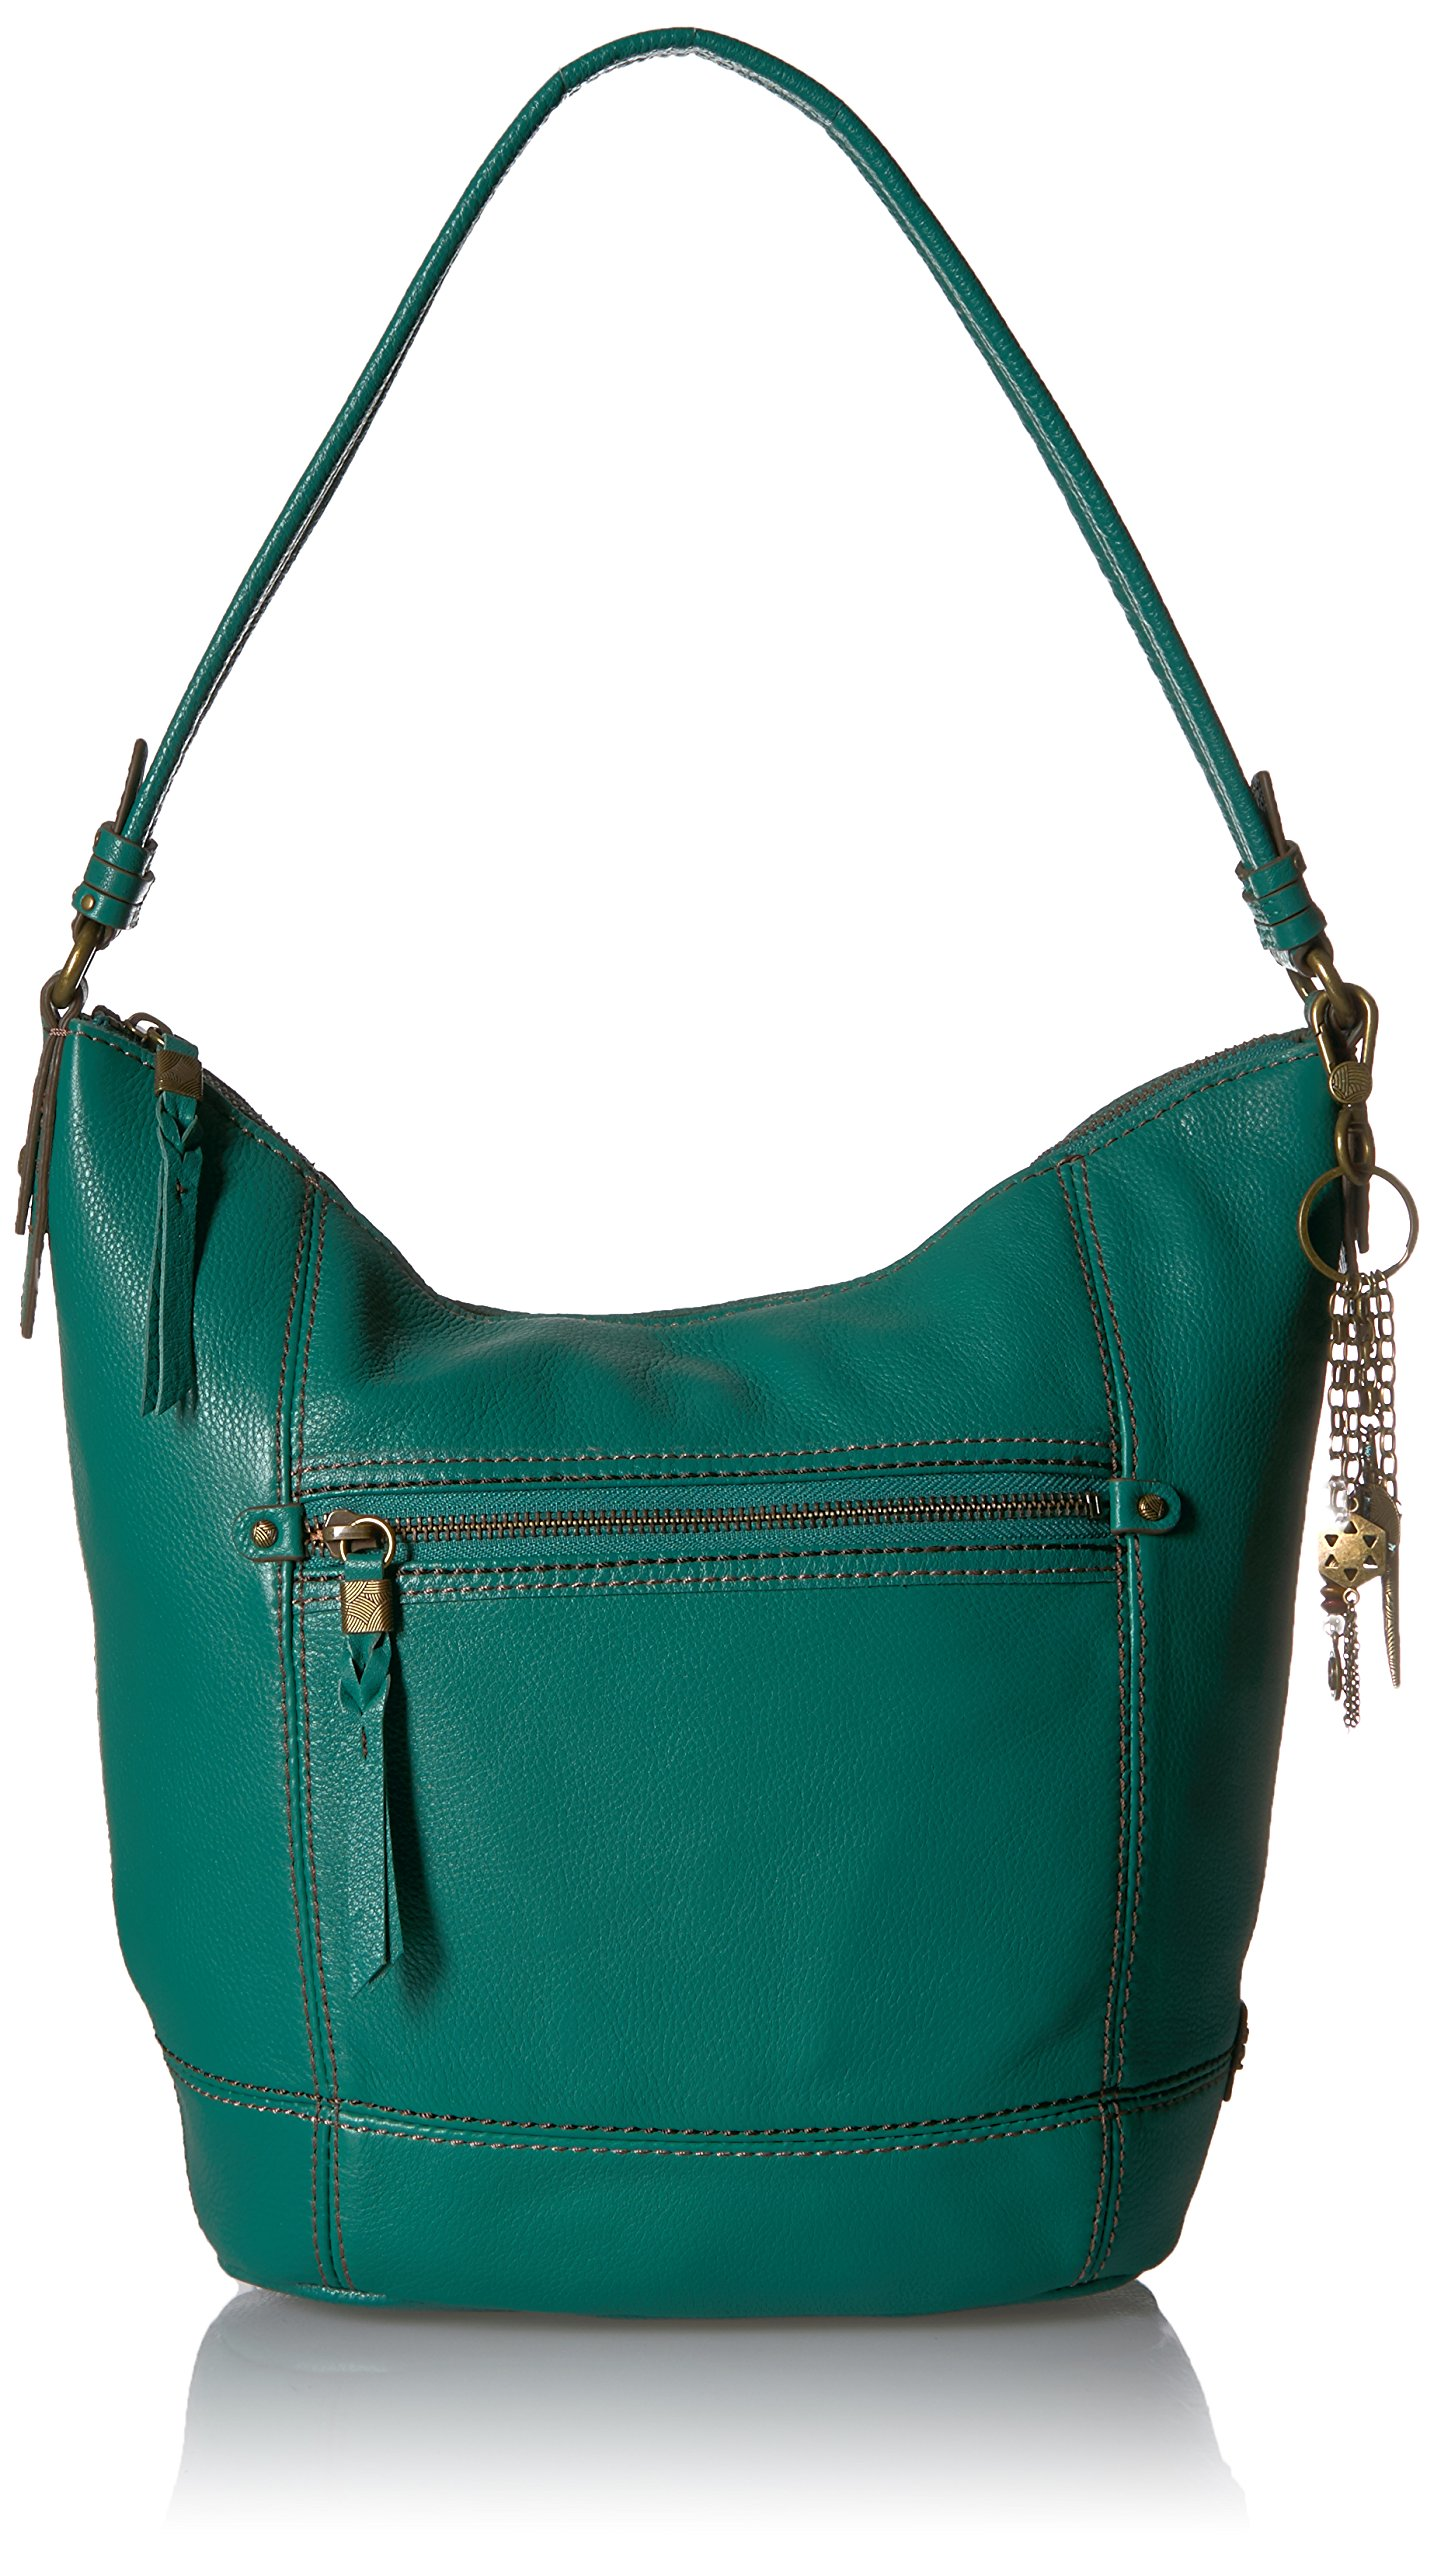 The Sak Sequoia Hobo Bag, Emerald